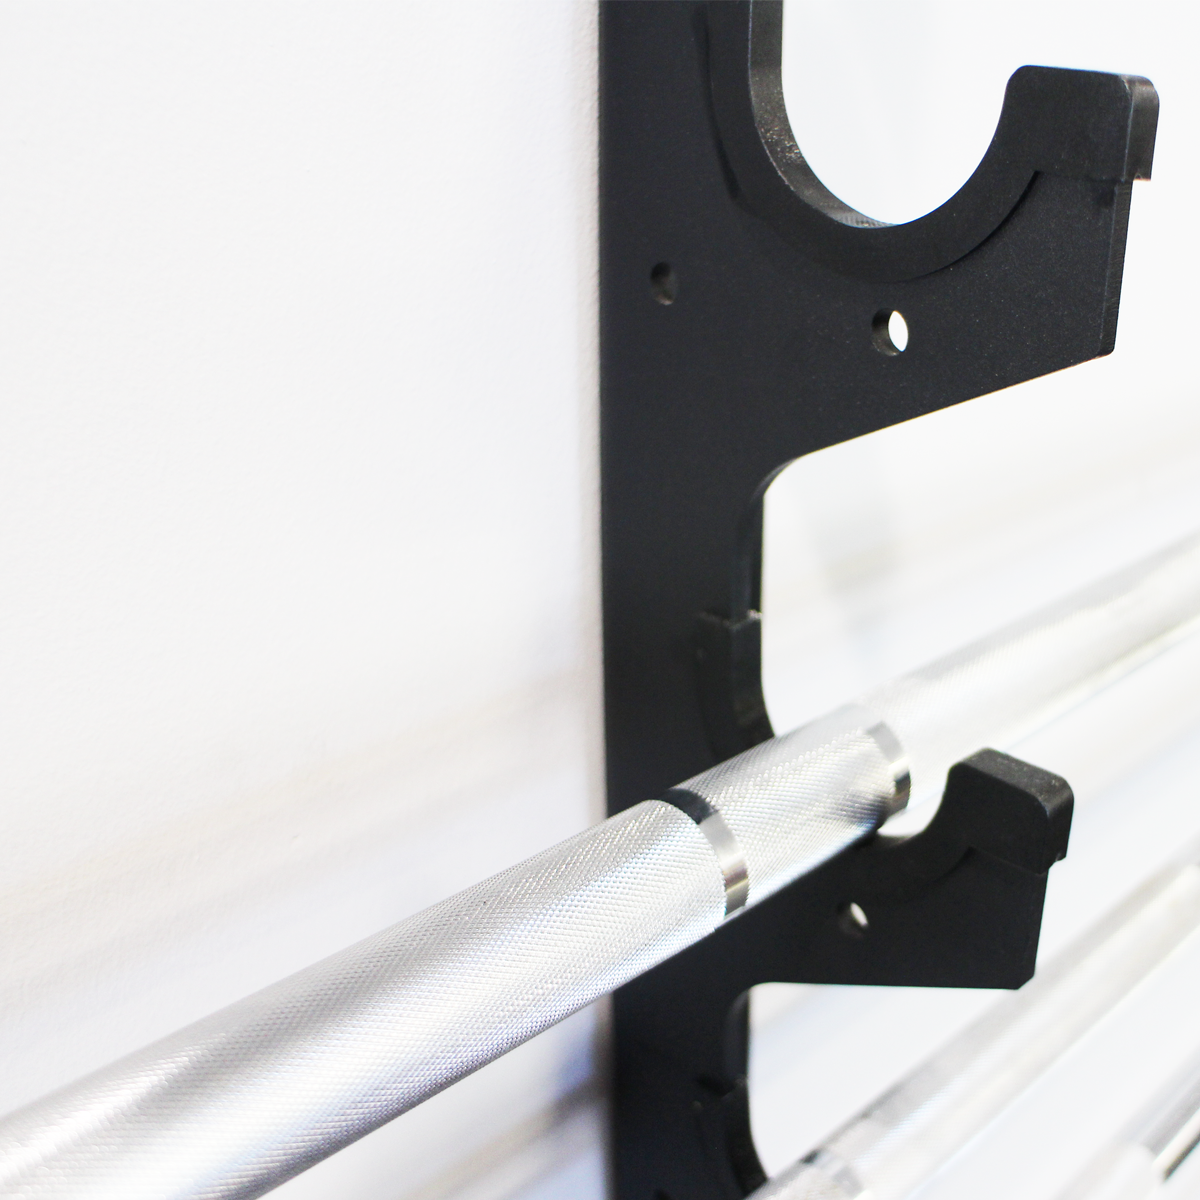 X Training Gun Rack - 6 Barbell Horizontal Wall Mount - Pre-Order Now - ETA Feb 28th